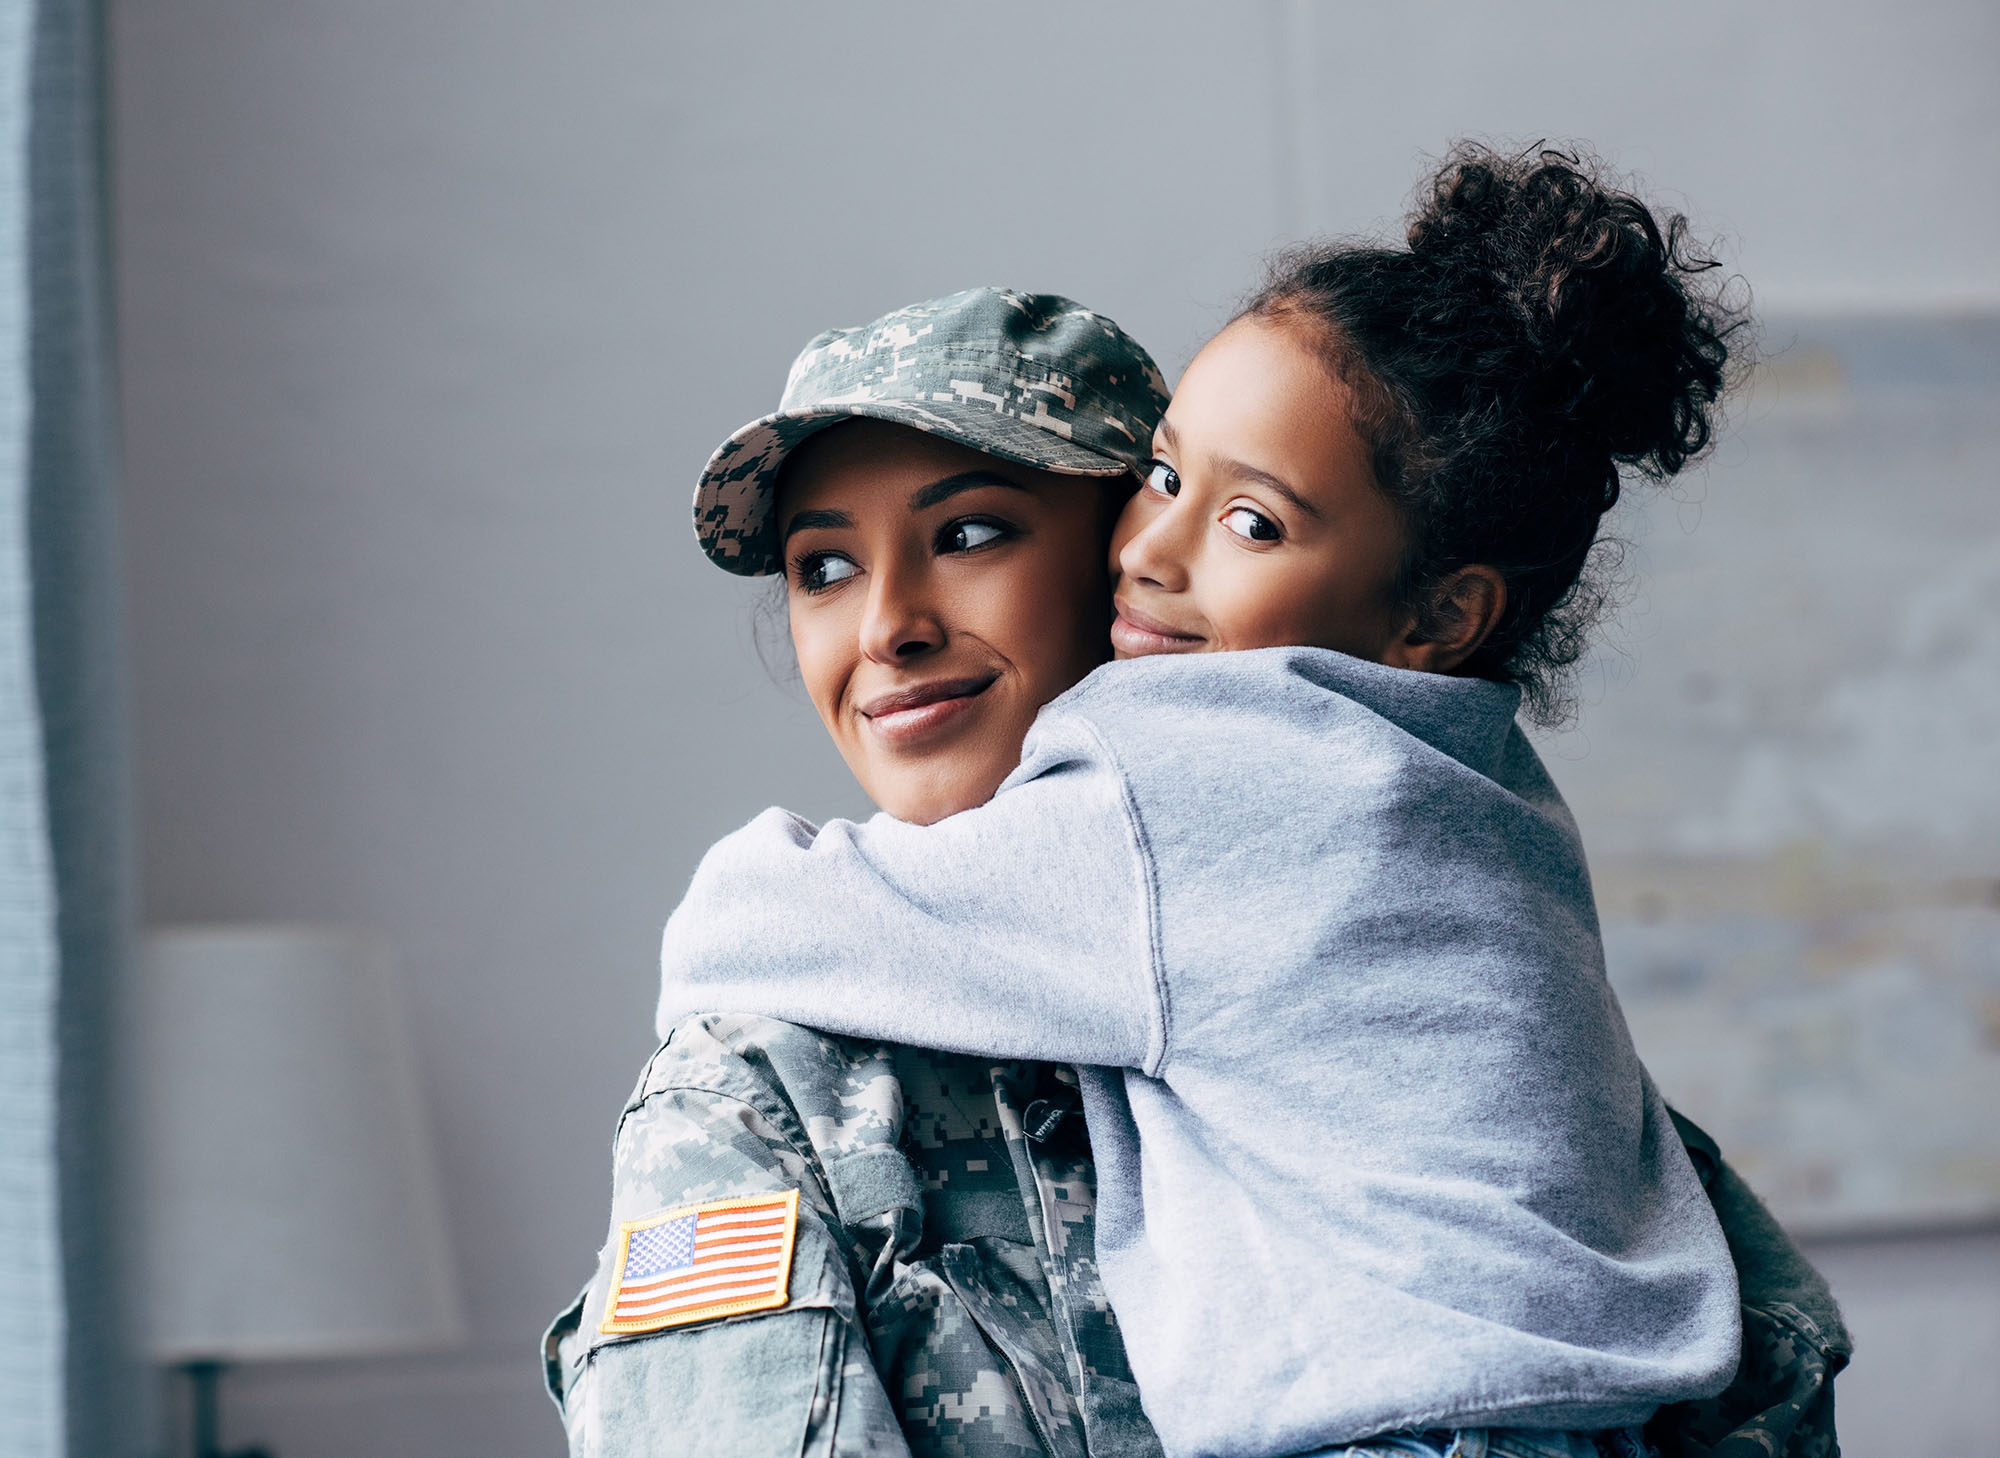 Army woman hugging girl